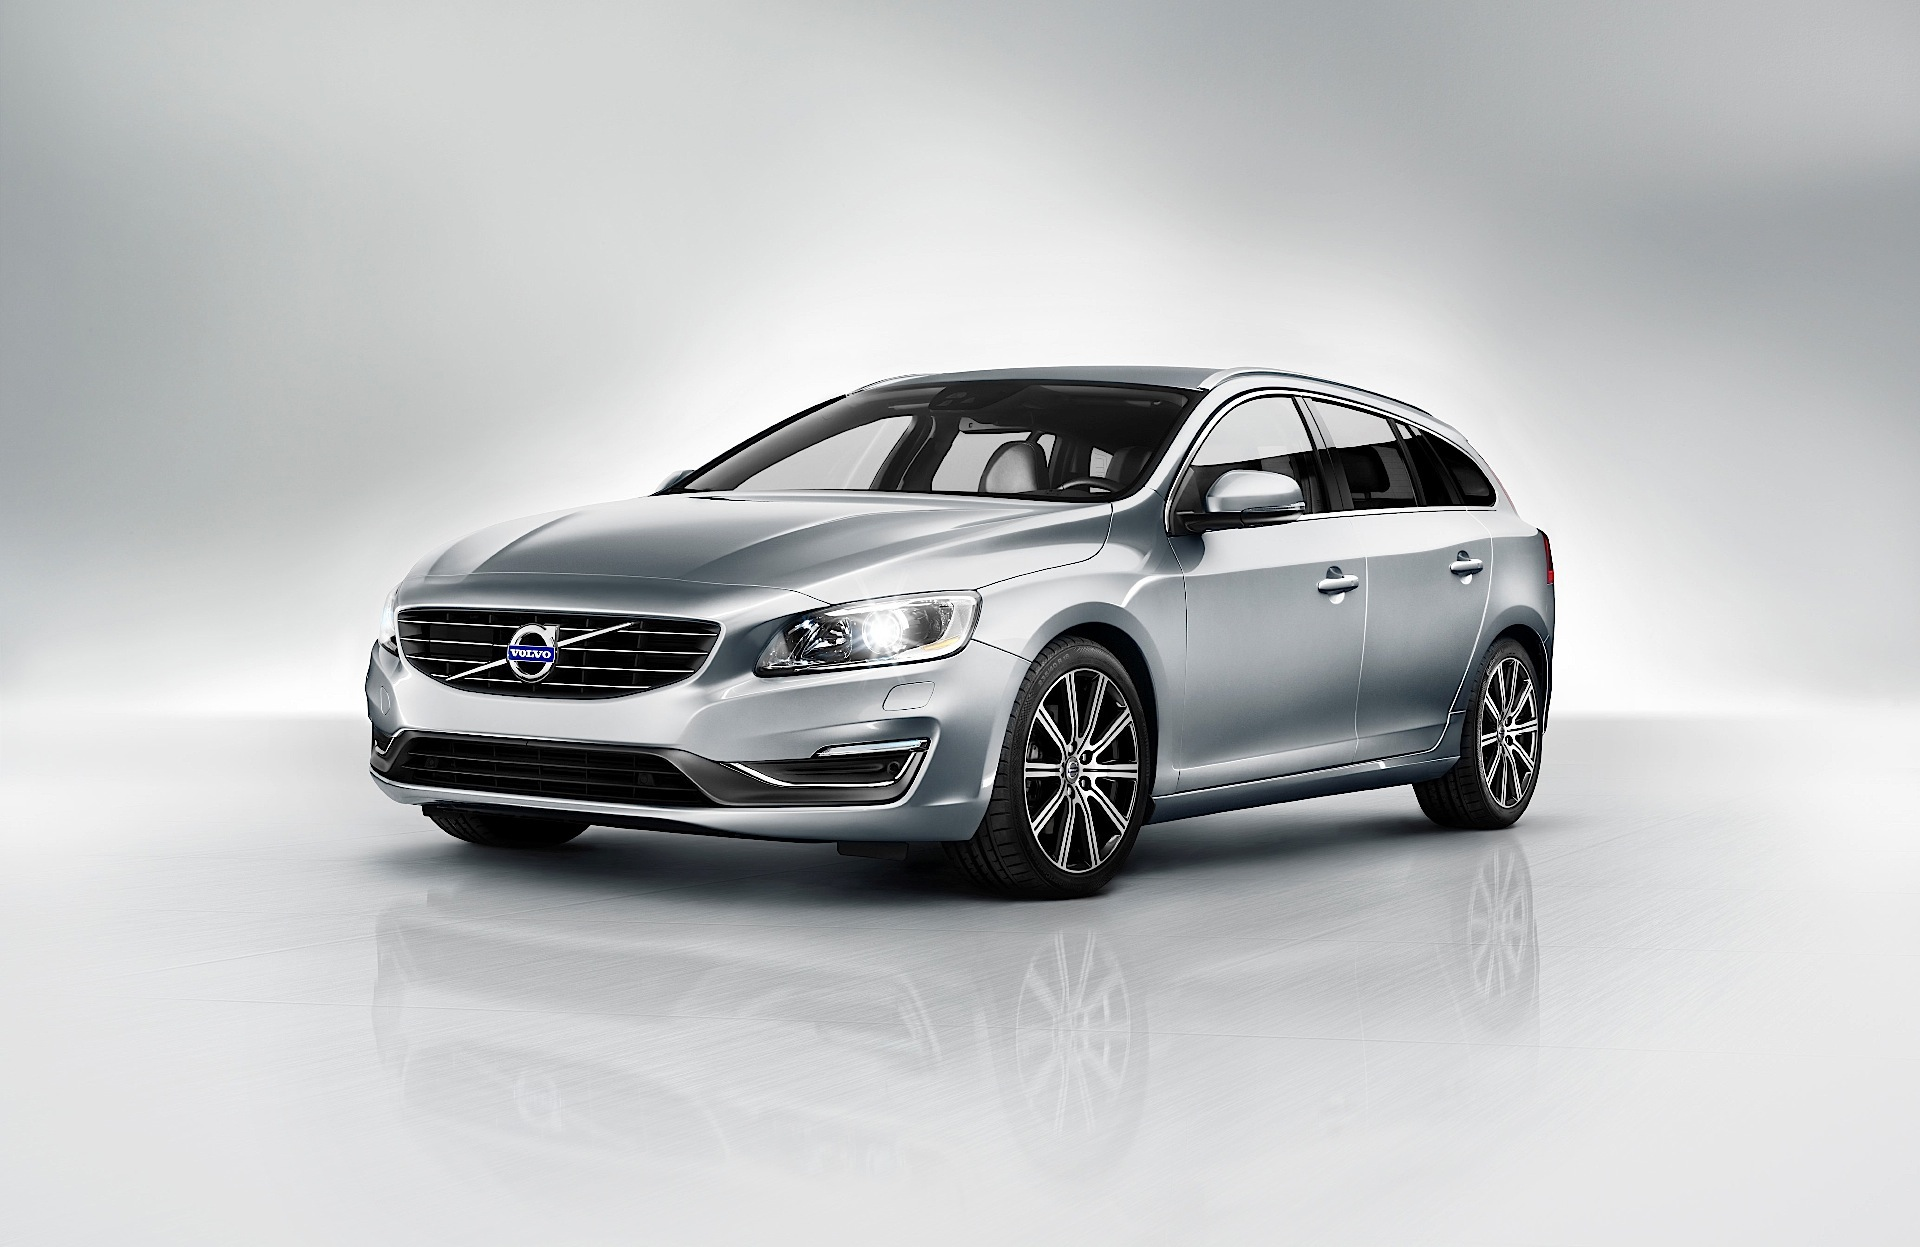 volvo v60 specs 2014 2015 2016 2017 2018 autoevolution. Black Bedroom Furniture Sets. Home Design Ideas